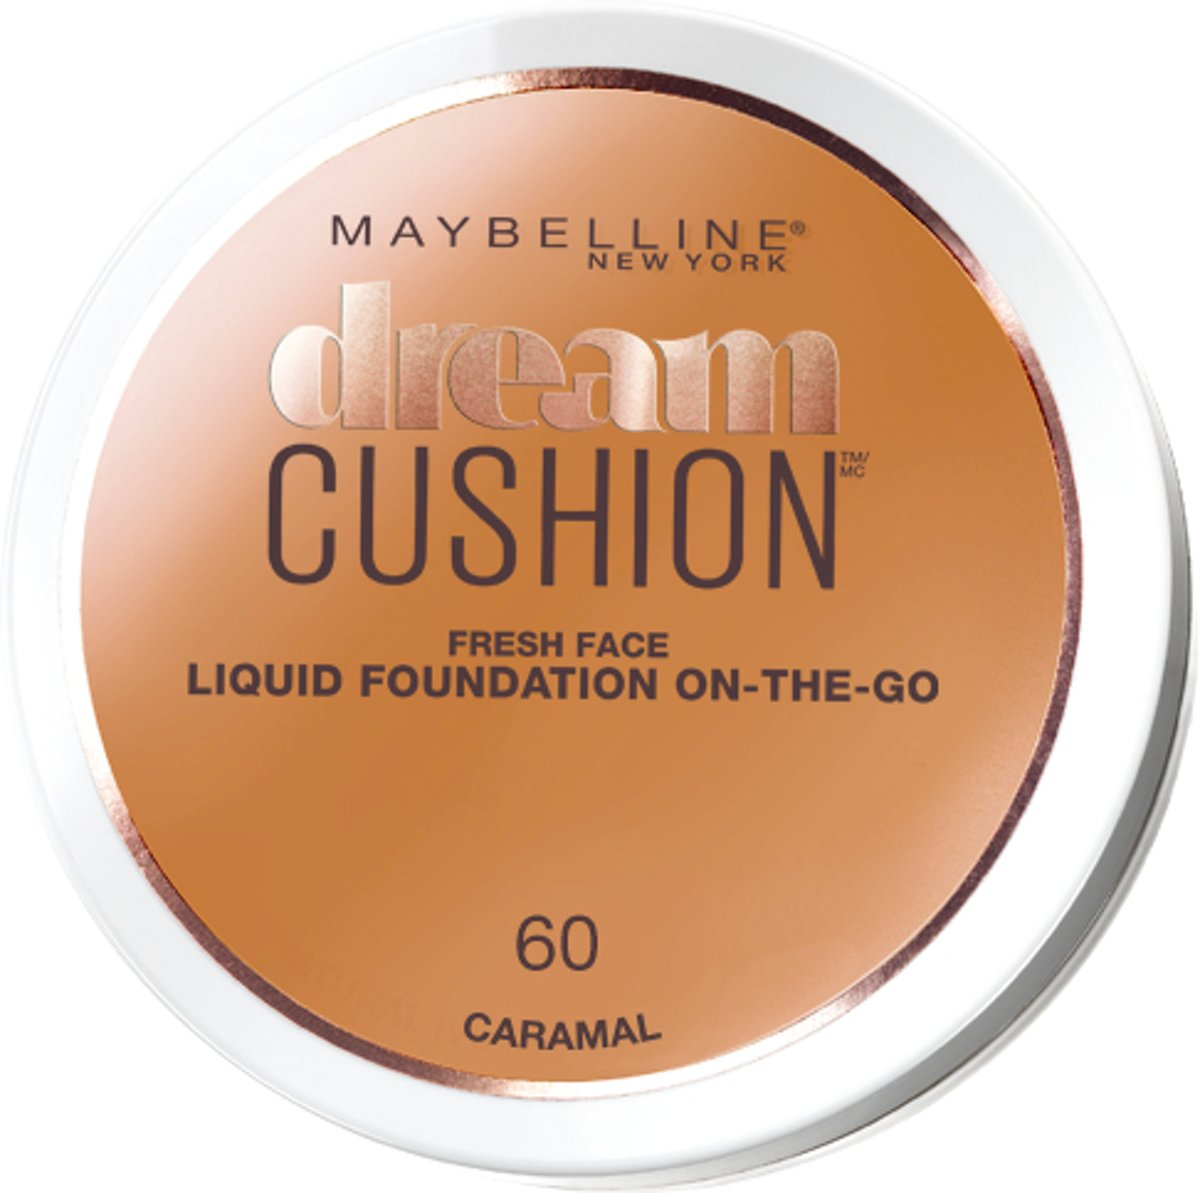 Maybelline Dream Cushion Foundation - 60 Caramel - Foundation